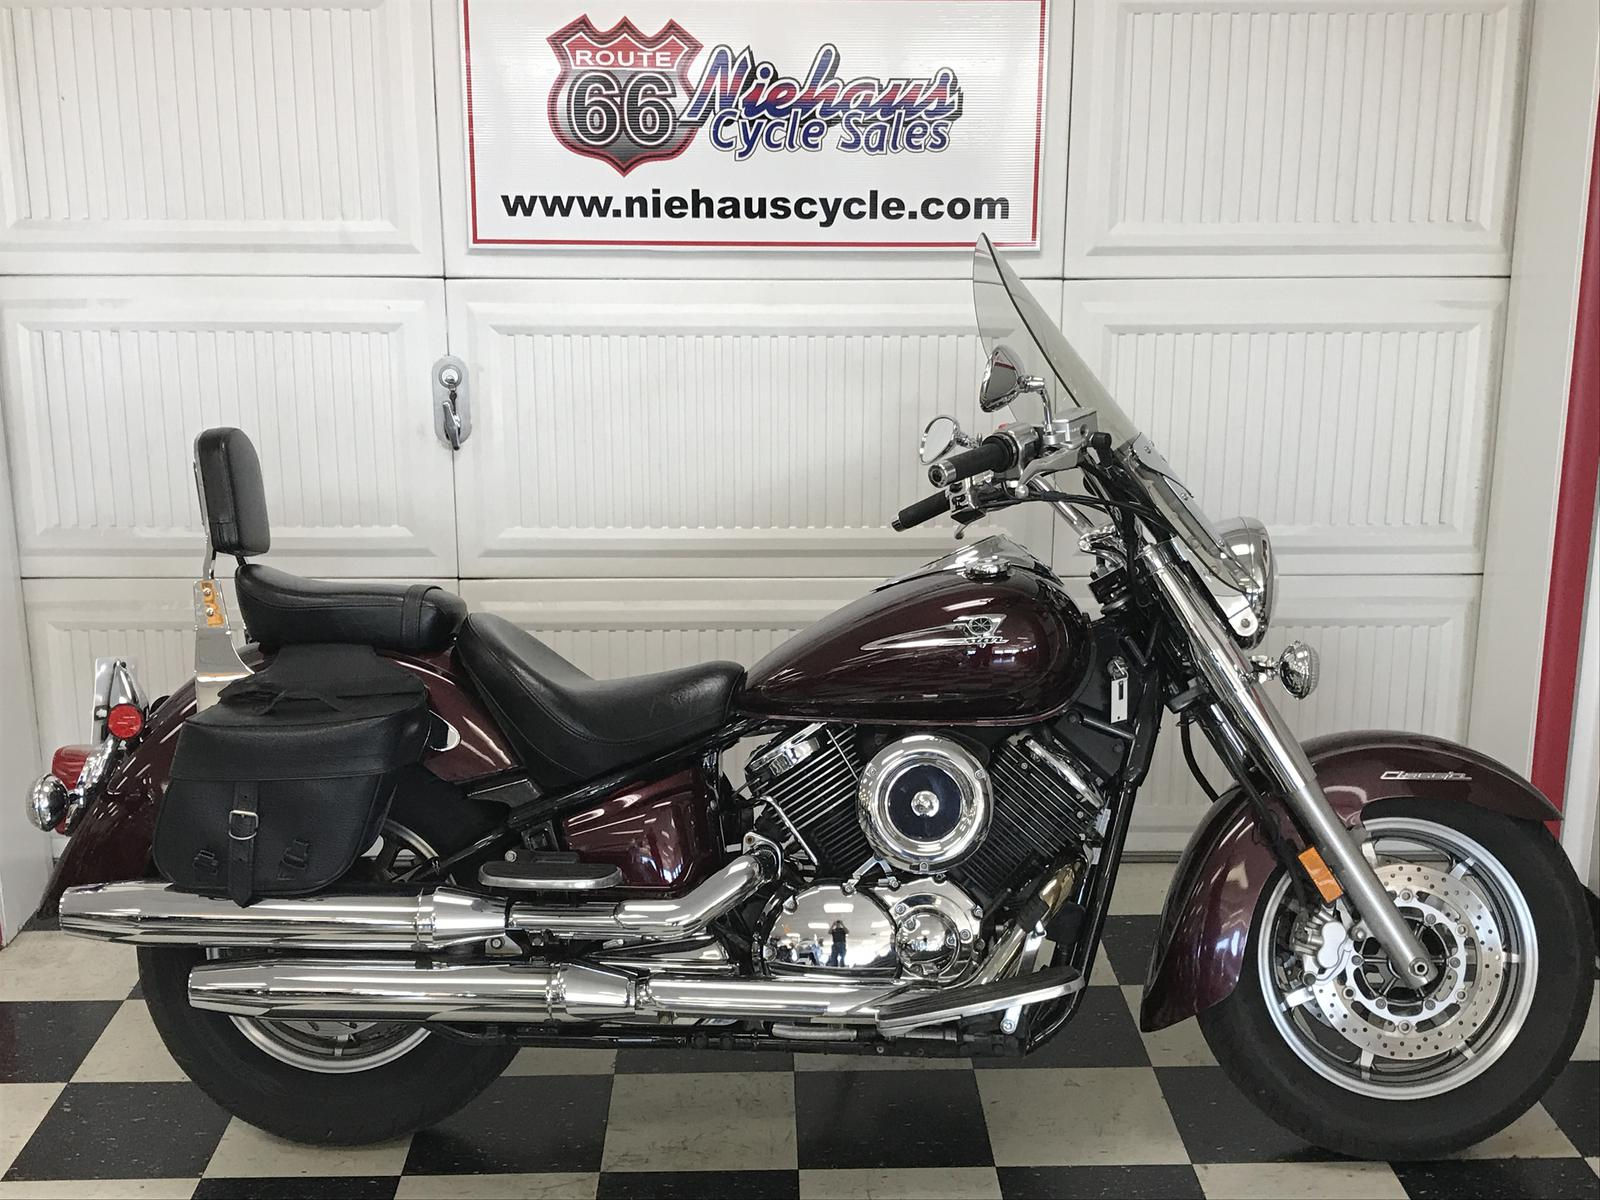 2007 Yamaha XVS1100 V STAR CLASSIC for sale in Litchfield IL